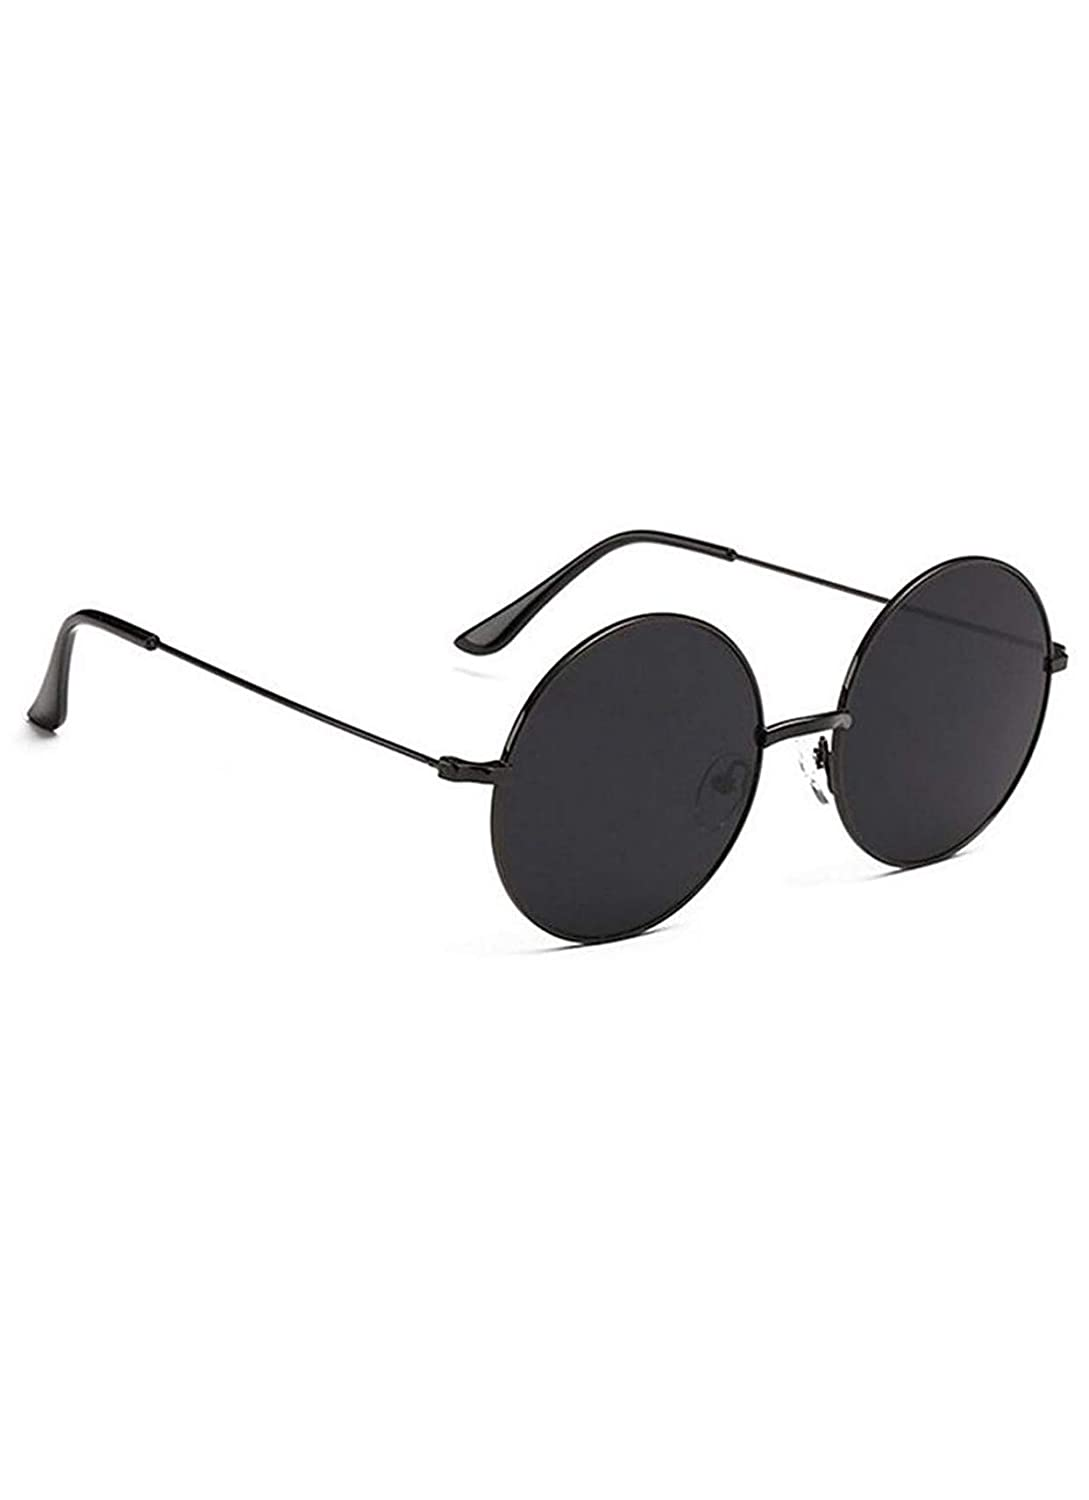 21be33b3f Vulture BLACK FULL ROUND SUNGLASSES For Mens Womens Boys And Girls:  Amazon.in: Clothing & Accessories